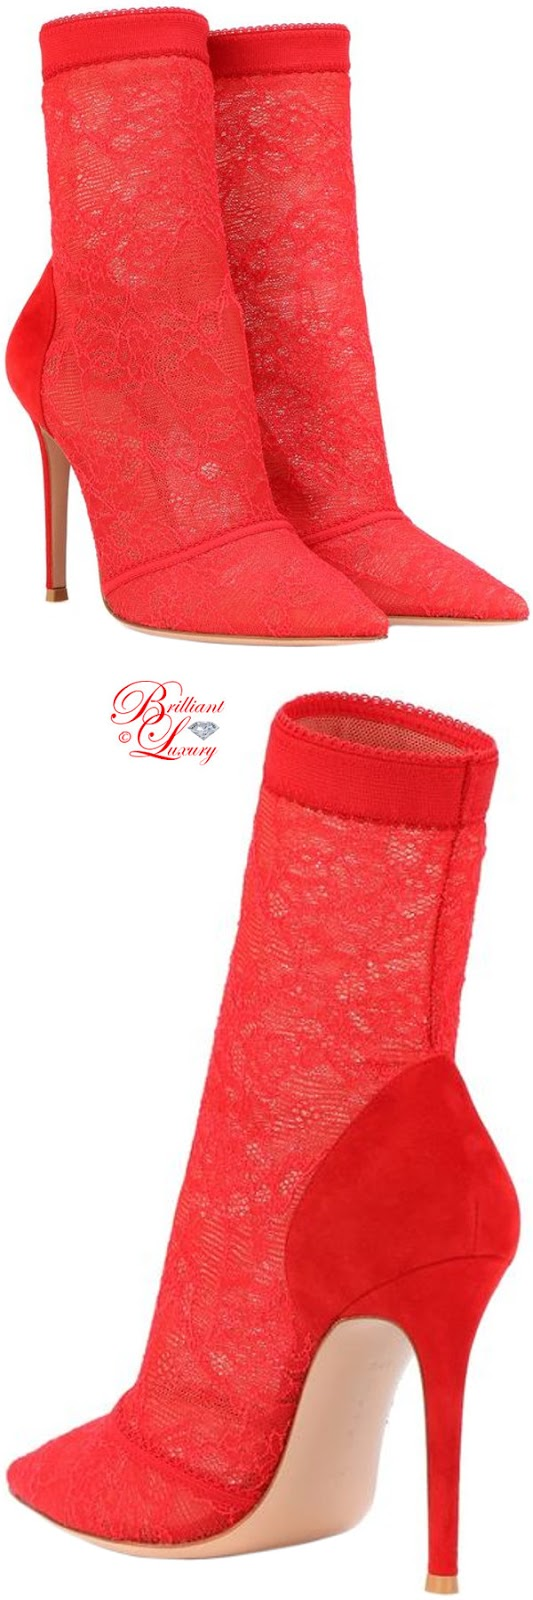 Brilliant Luxury ♦ PANTONE Fashion Color SS 2019 ~ Fiesta ♦ Gianvito Rossi Brinn lace ankle boots #red